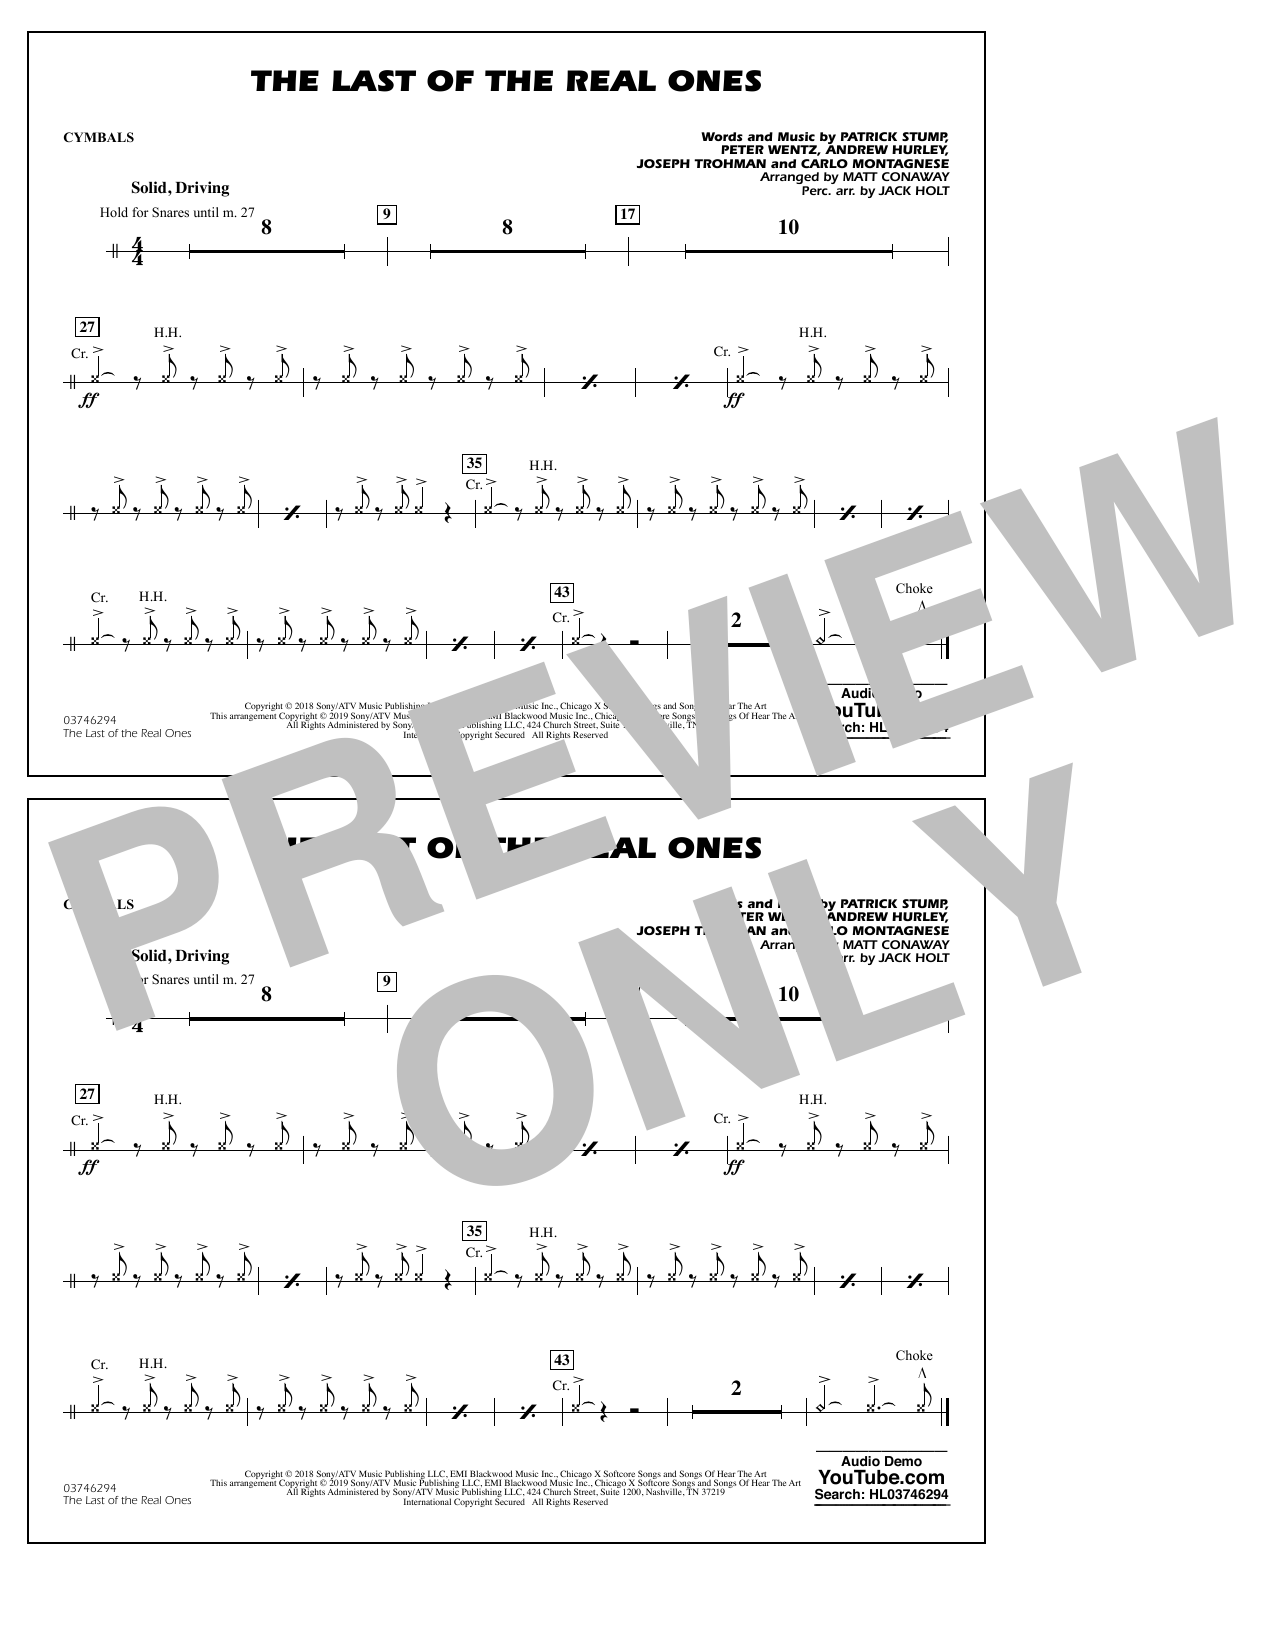 Last of the Real Ones (arr. Matt Conaway) - Cymbals (Marching Band)